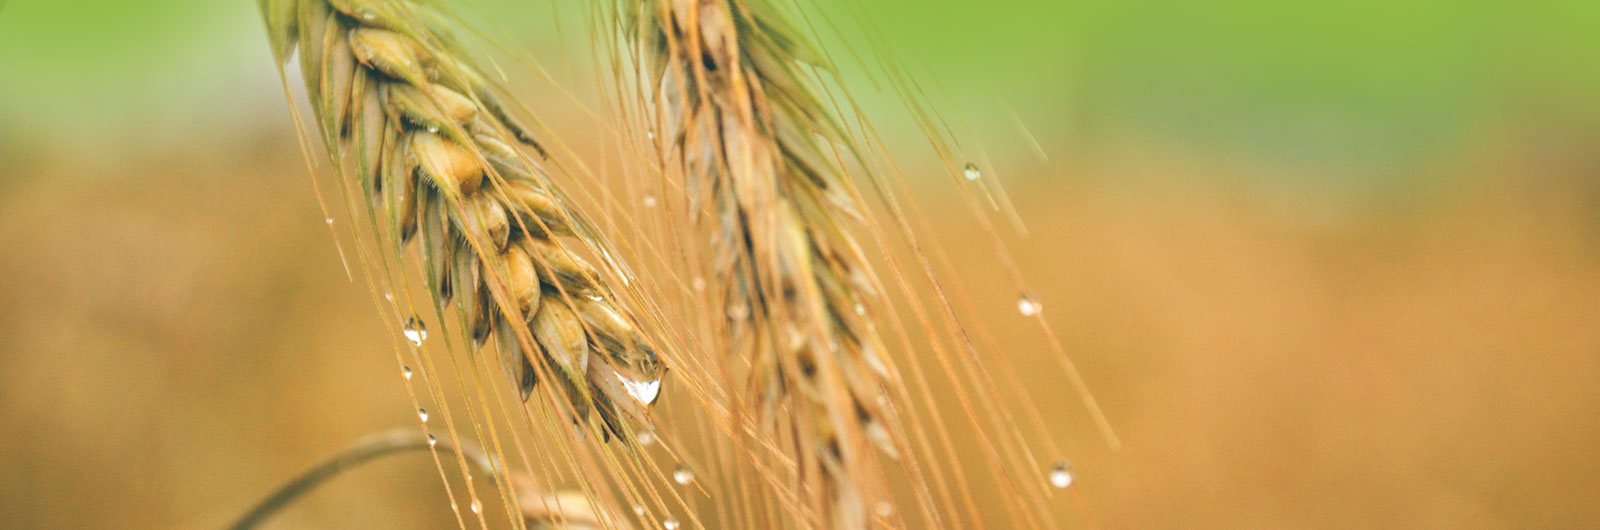 amerstem-green-bio-technology-genetics-company-applications-aggriculture crops